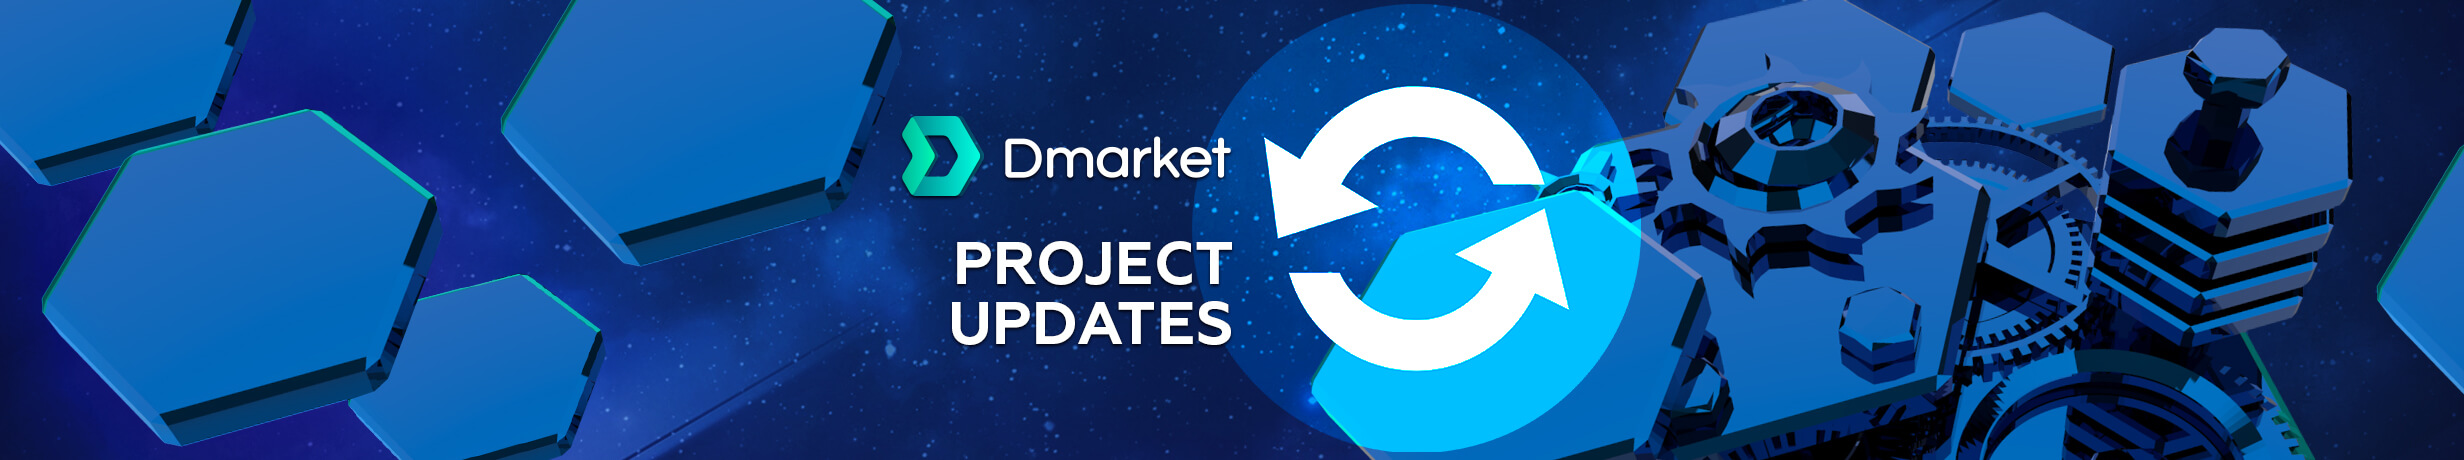 DMarket Project Updates on Founder's Mark and the Payment Gateway Integration